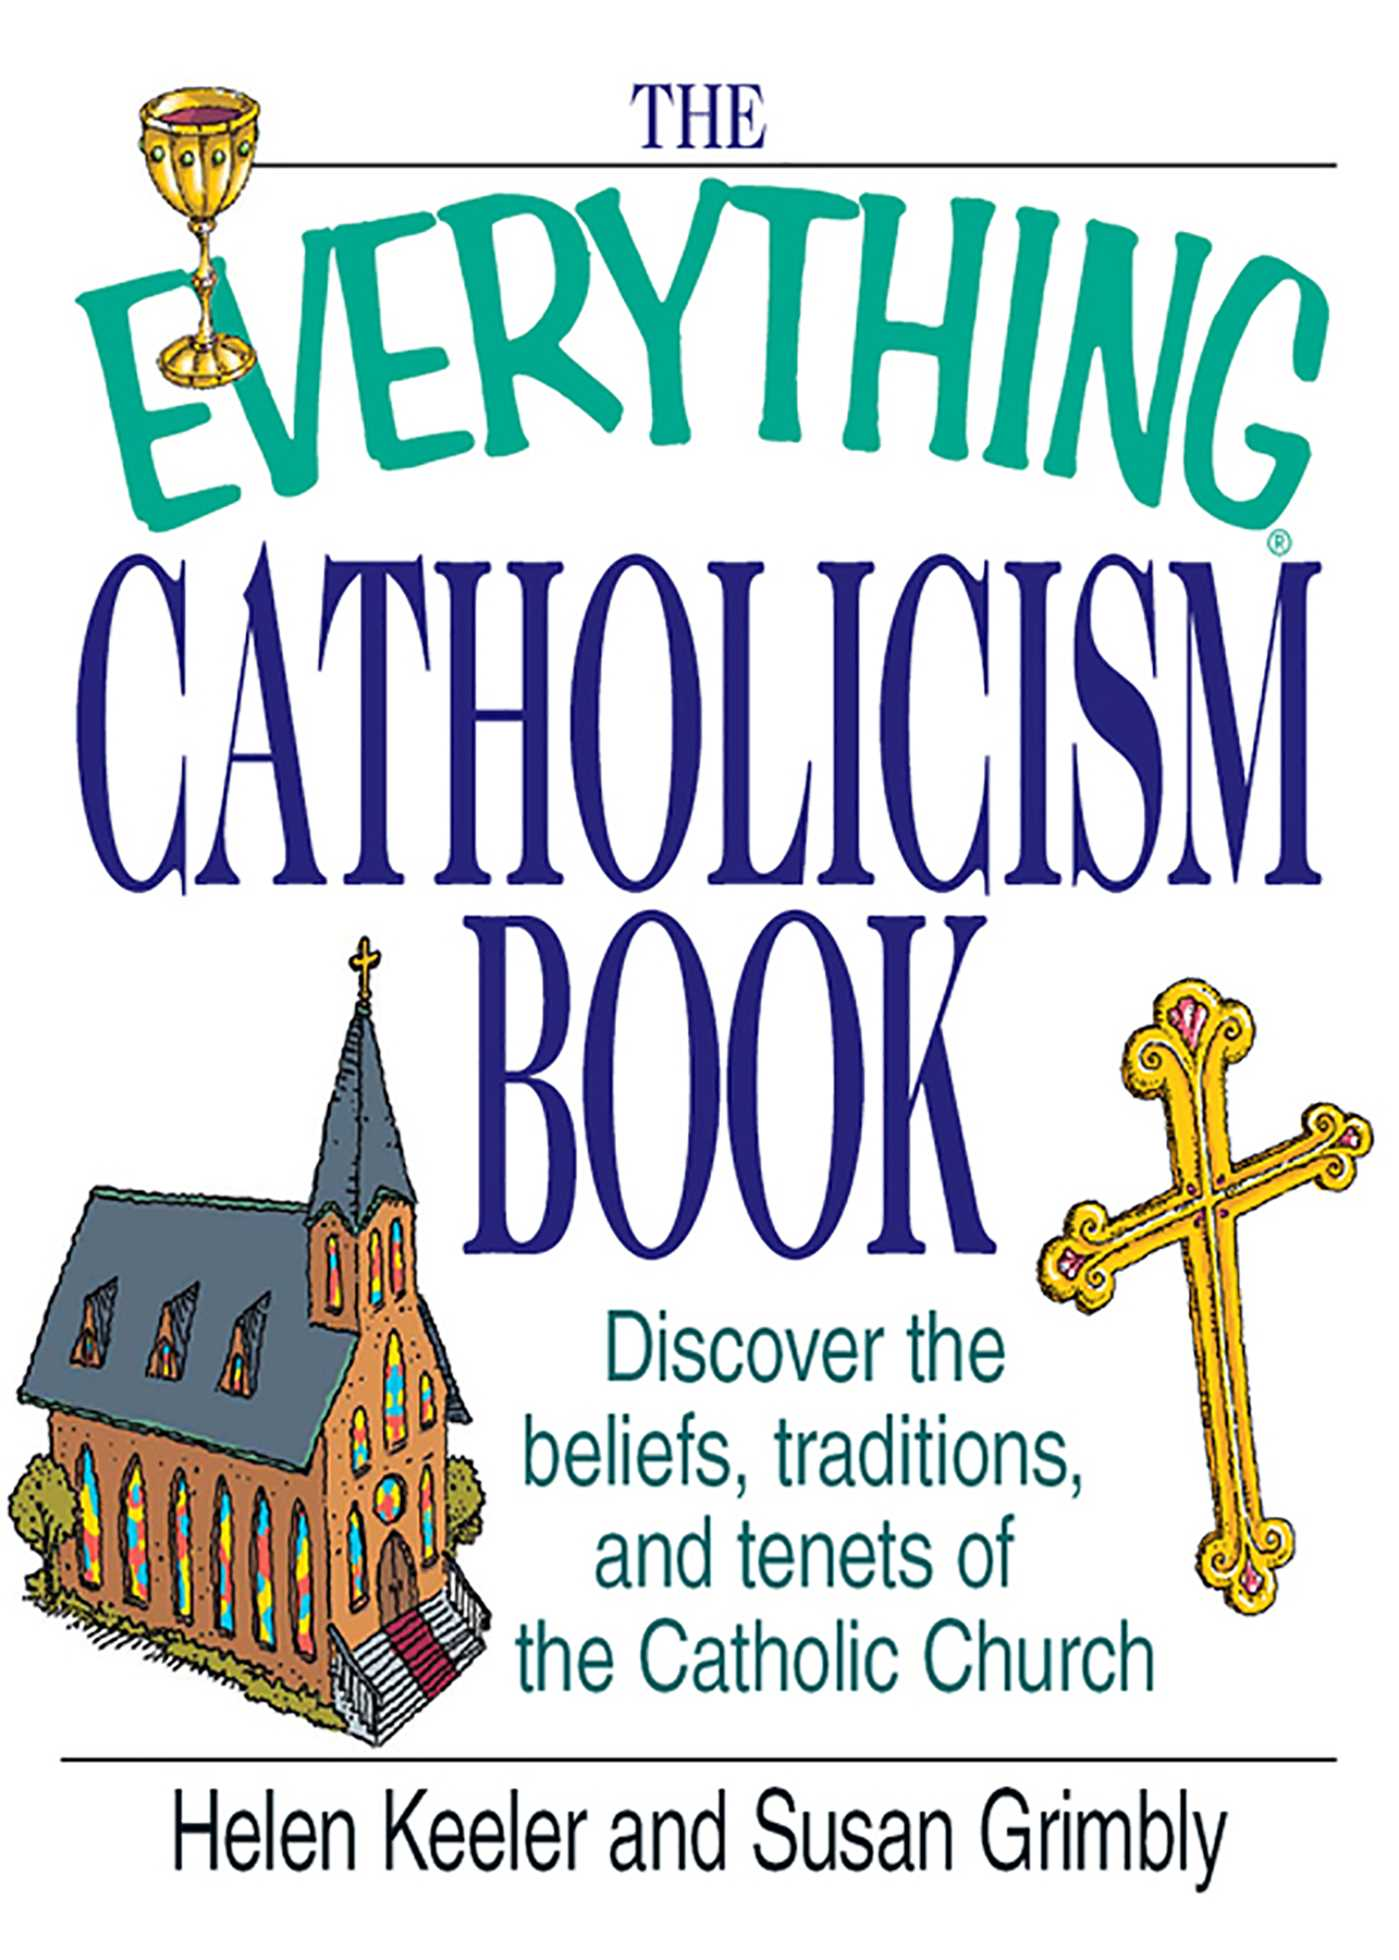 The Everything Catholicism Book Discover the Beliefs, Traditions, and Tenets of the Catholic Church